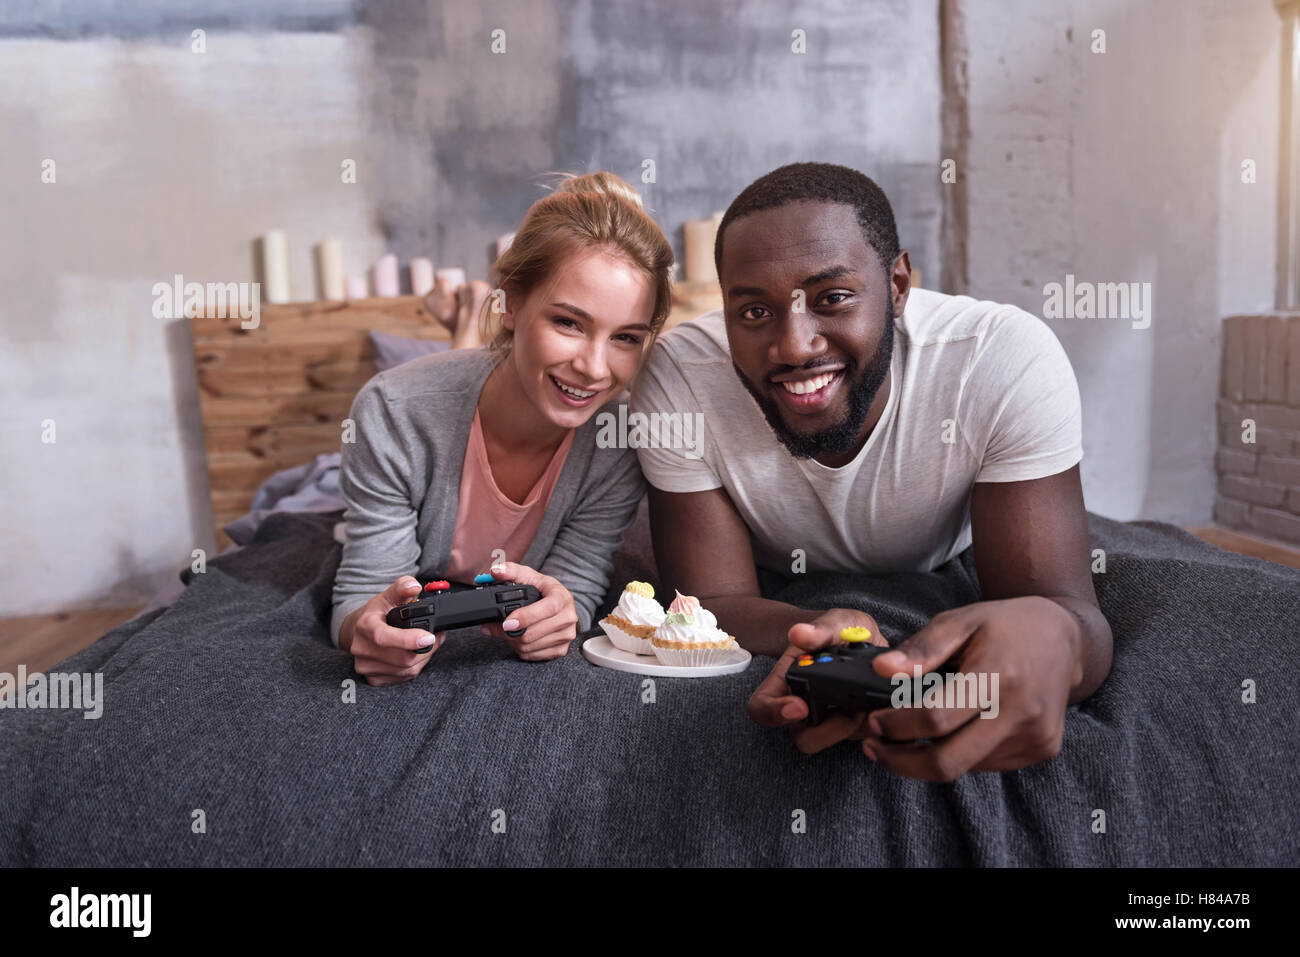 International couple playing games on console together - Stock Image